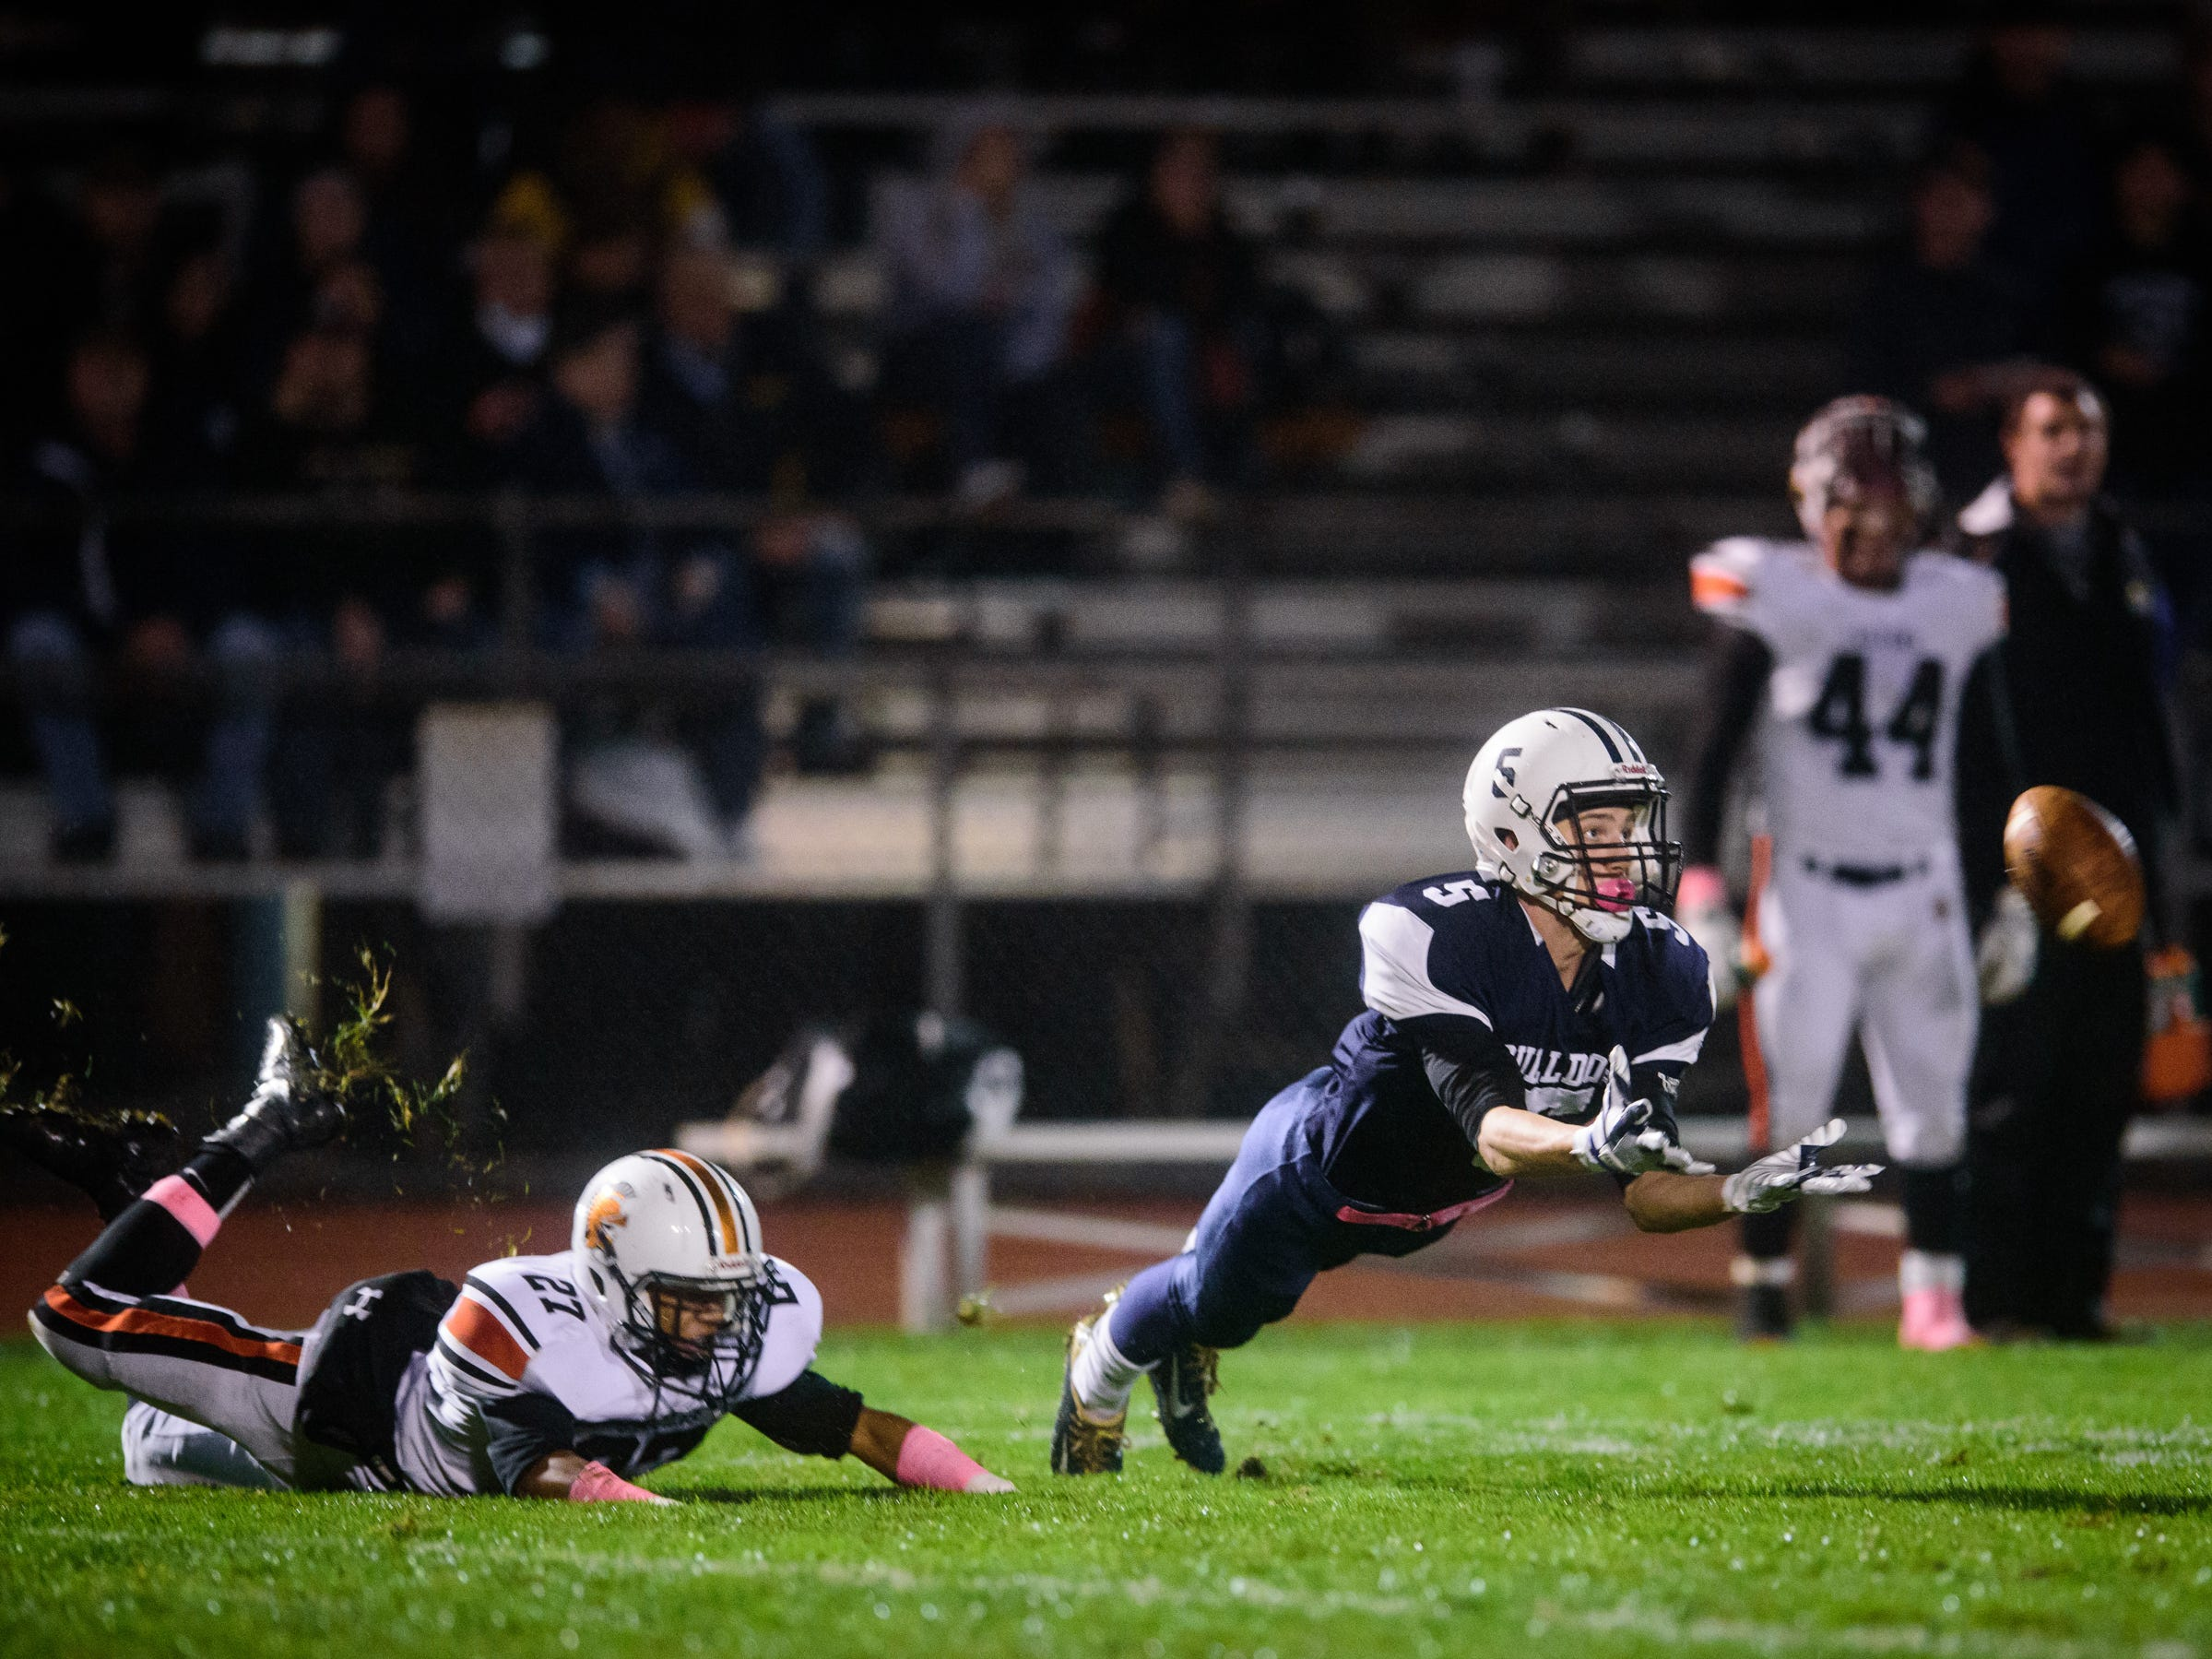 West York's Andrew LaManna (5) stretches out but comes up short of a reception against York Suburban in a YAIAA football game on Friday, Oct. 13, 2017. West York won 34-0.